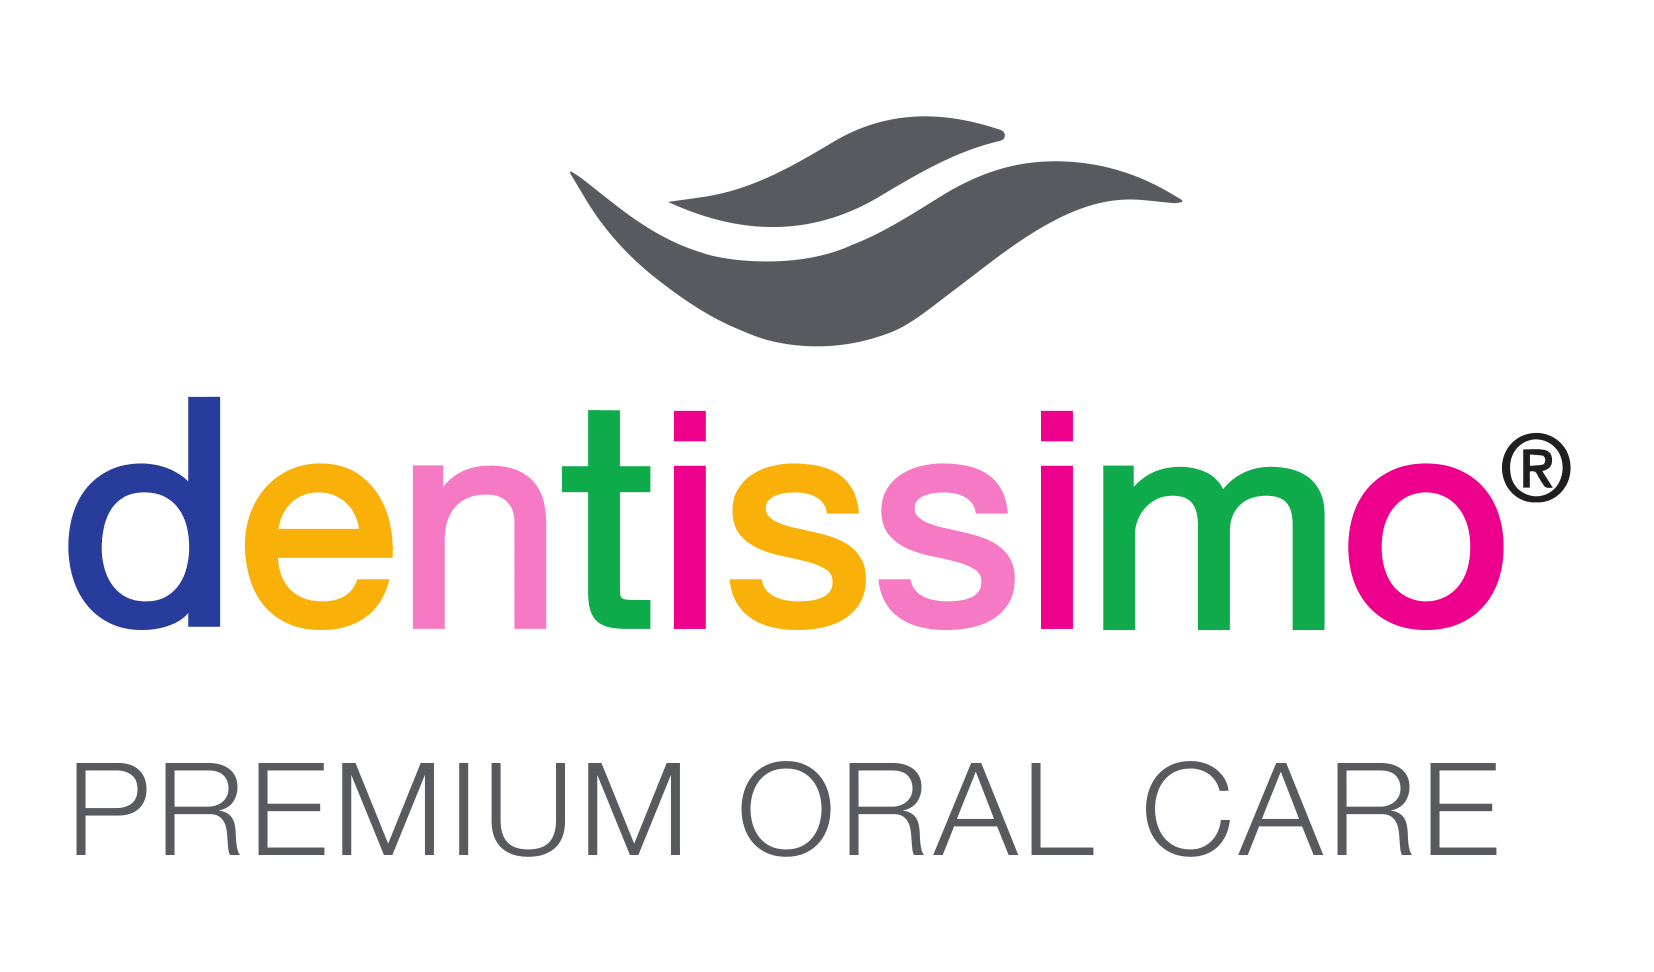 Dentissimo premium oral care